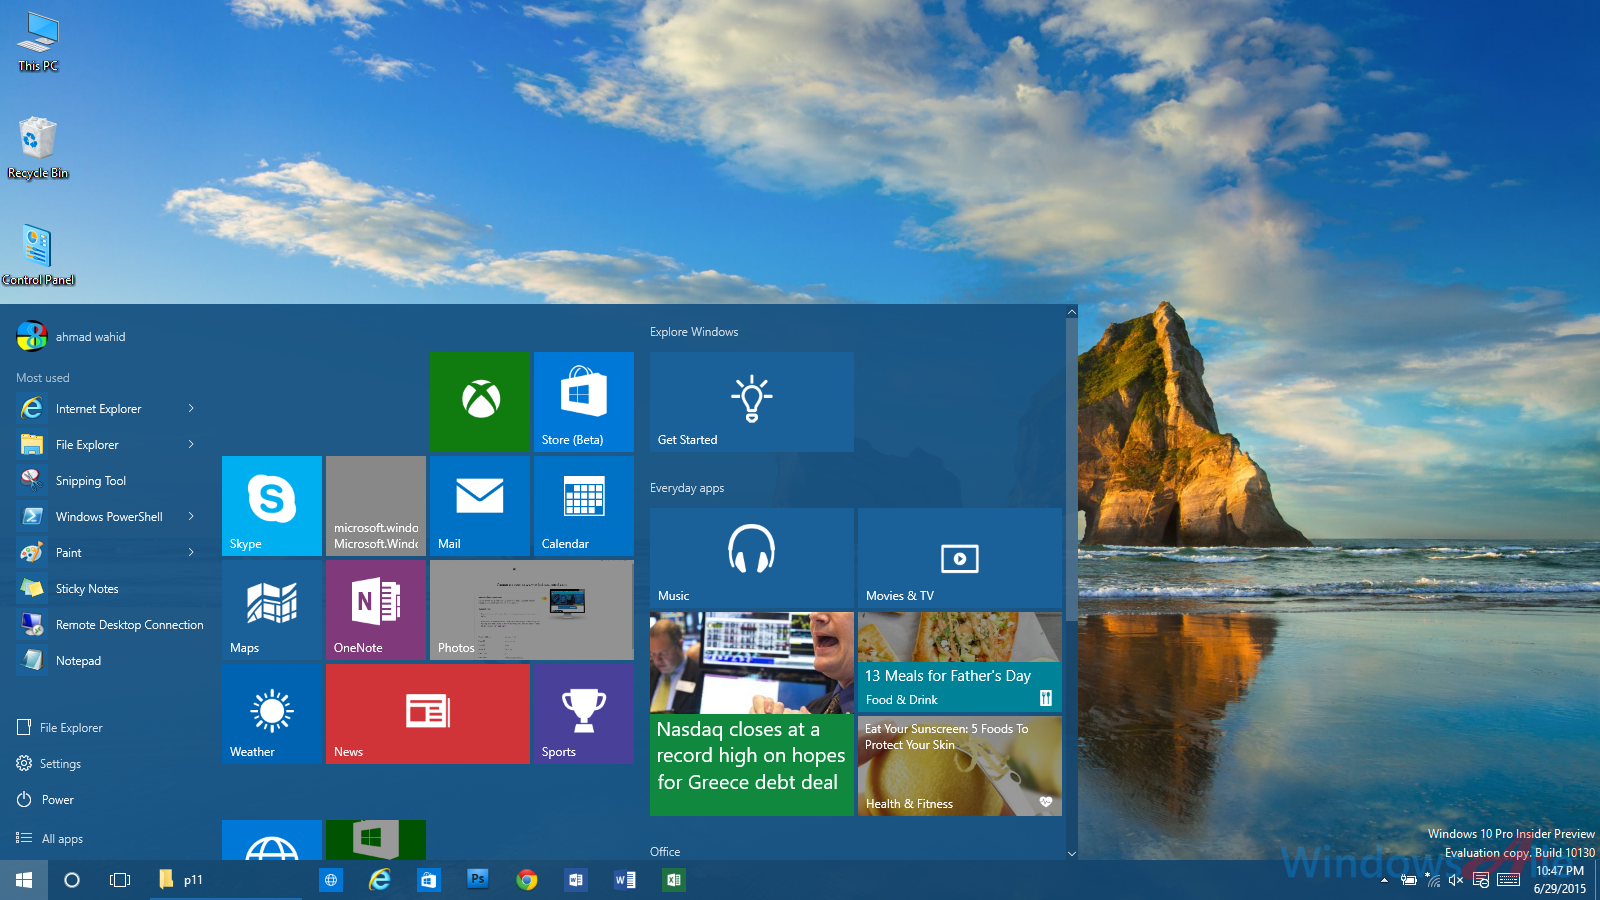 Windows 10 Insider Preview build 10158 is now available for download